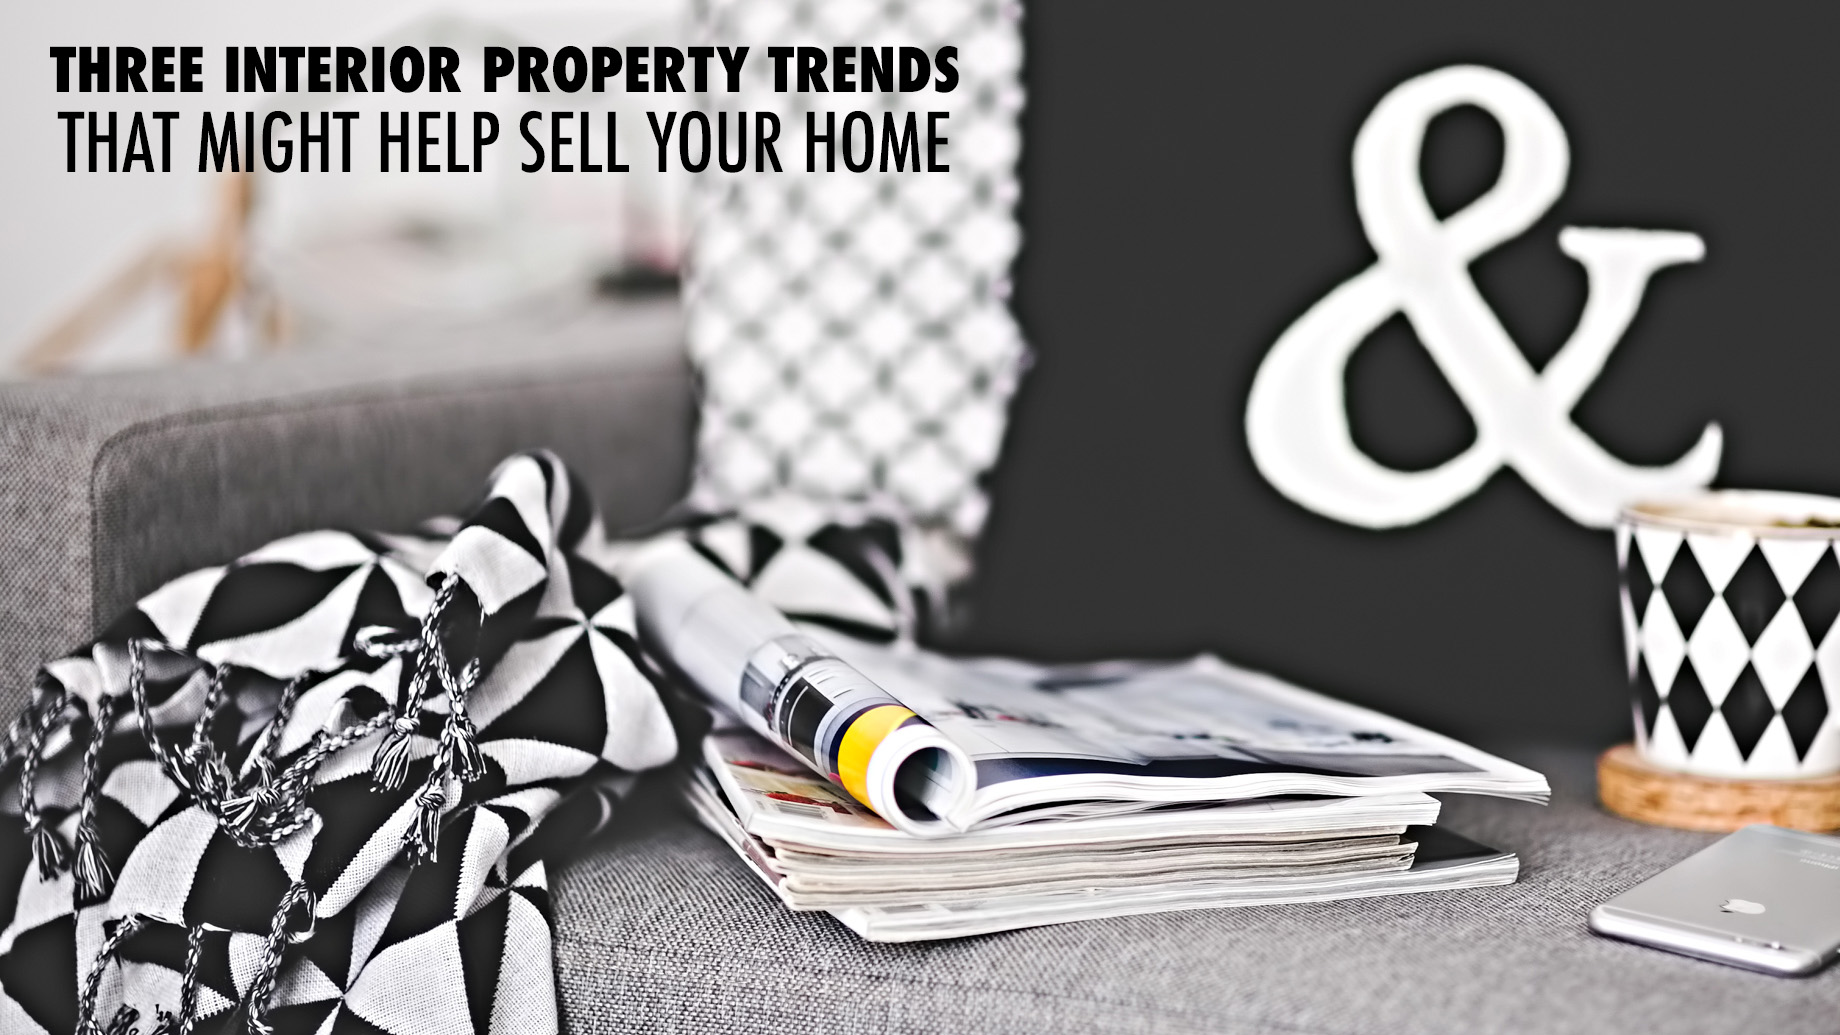 Three Interior Property Trends that Might Help Sell Your Home